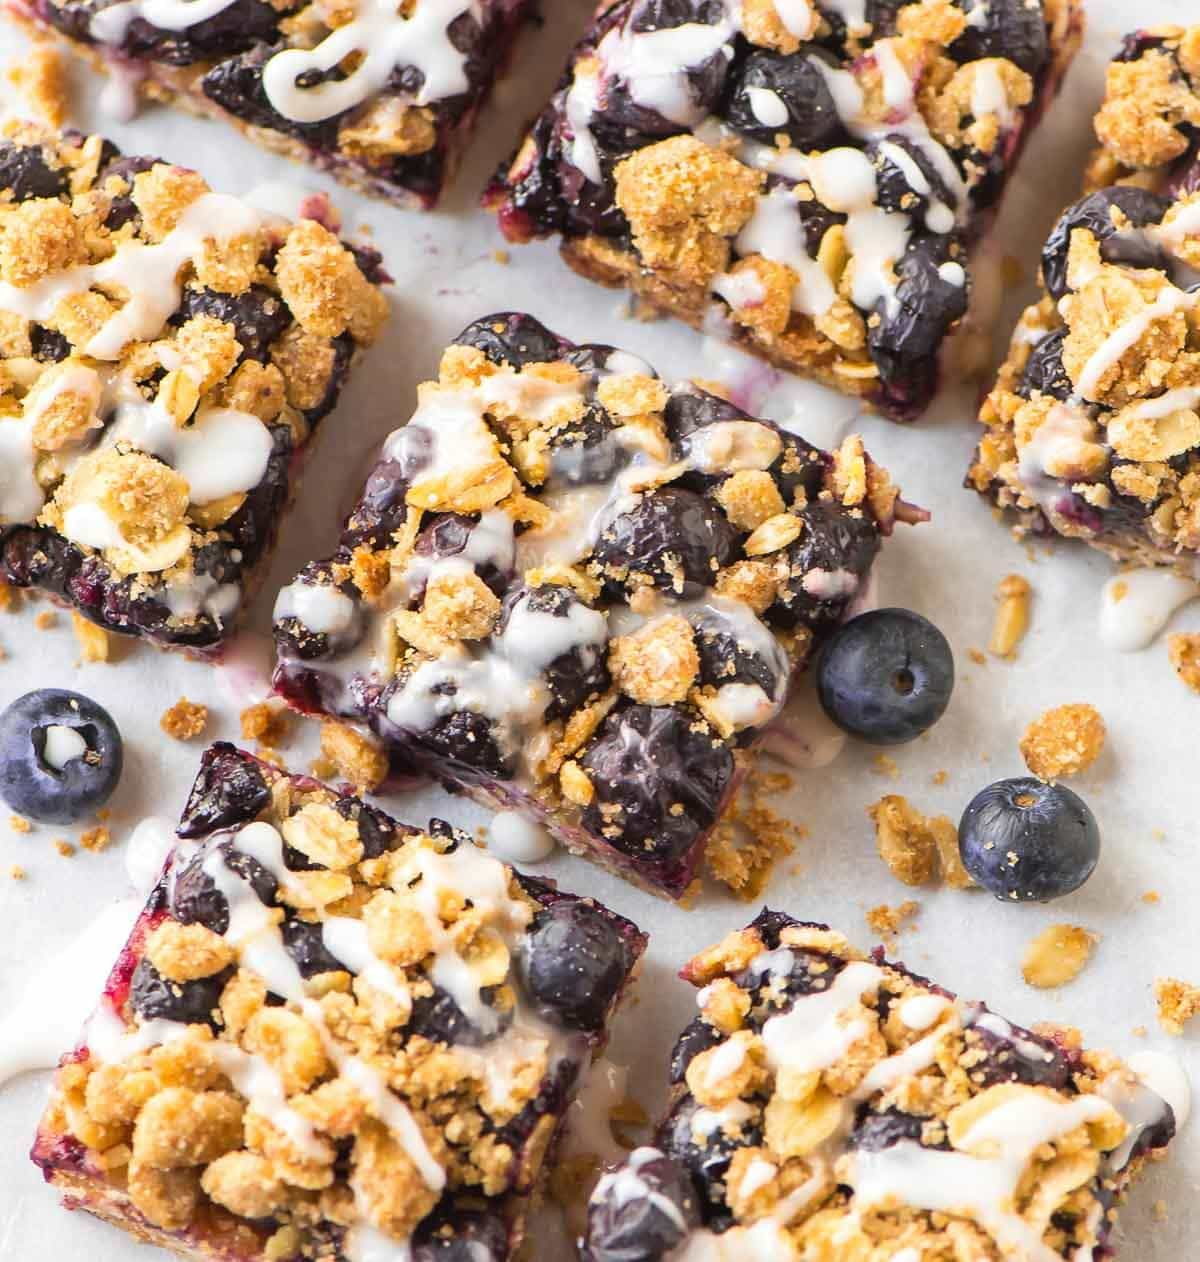 Healthy Blueberry Oatmeal Bars. Only 105 calories each! Fast, easy, no mixer required. Buttery and soft with butter brown sugar crumble and sweet vanilla glaze. Perfect healthy dessert or breakfast for busy mornings. Recipe at wellplated.com | @wellplated